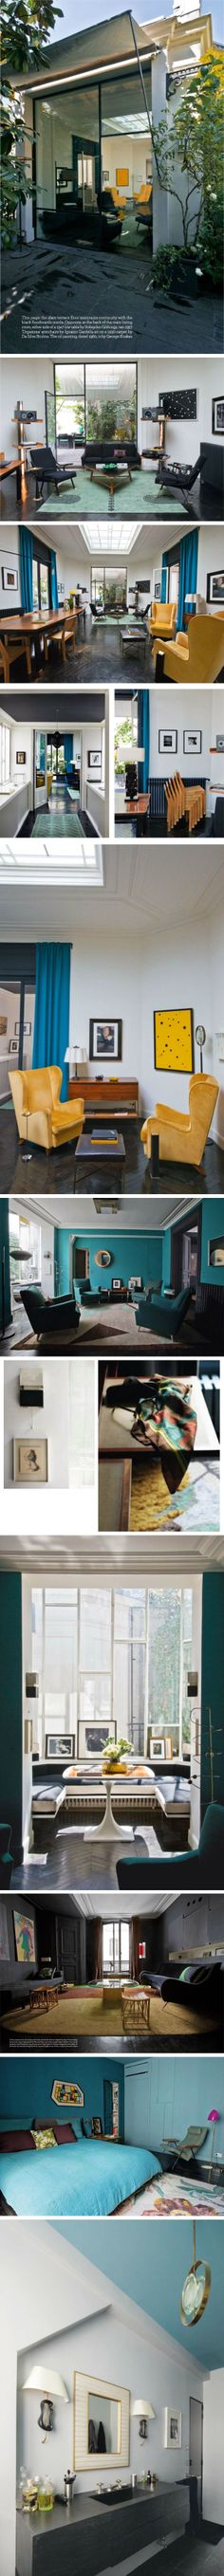 Charlotte Gainsbourg & Yvan Attal Home by Florence Lopez